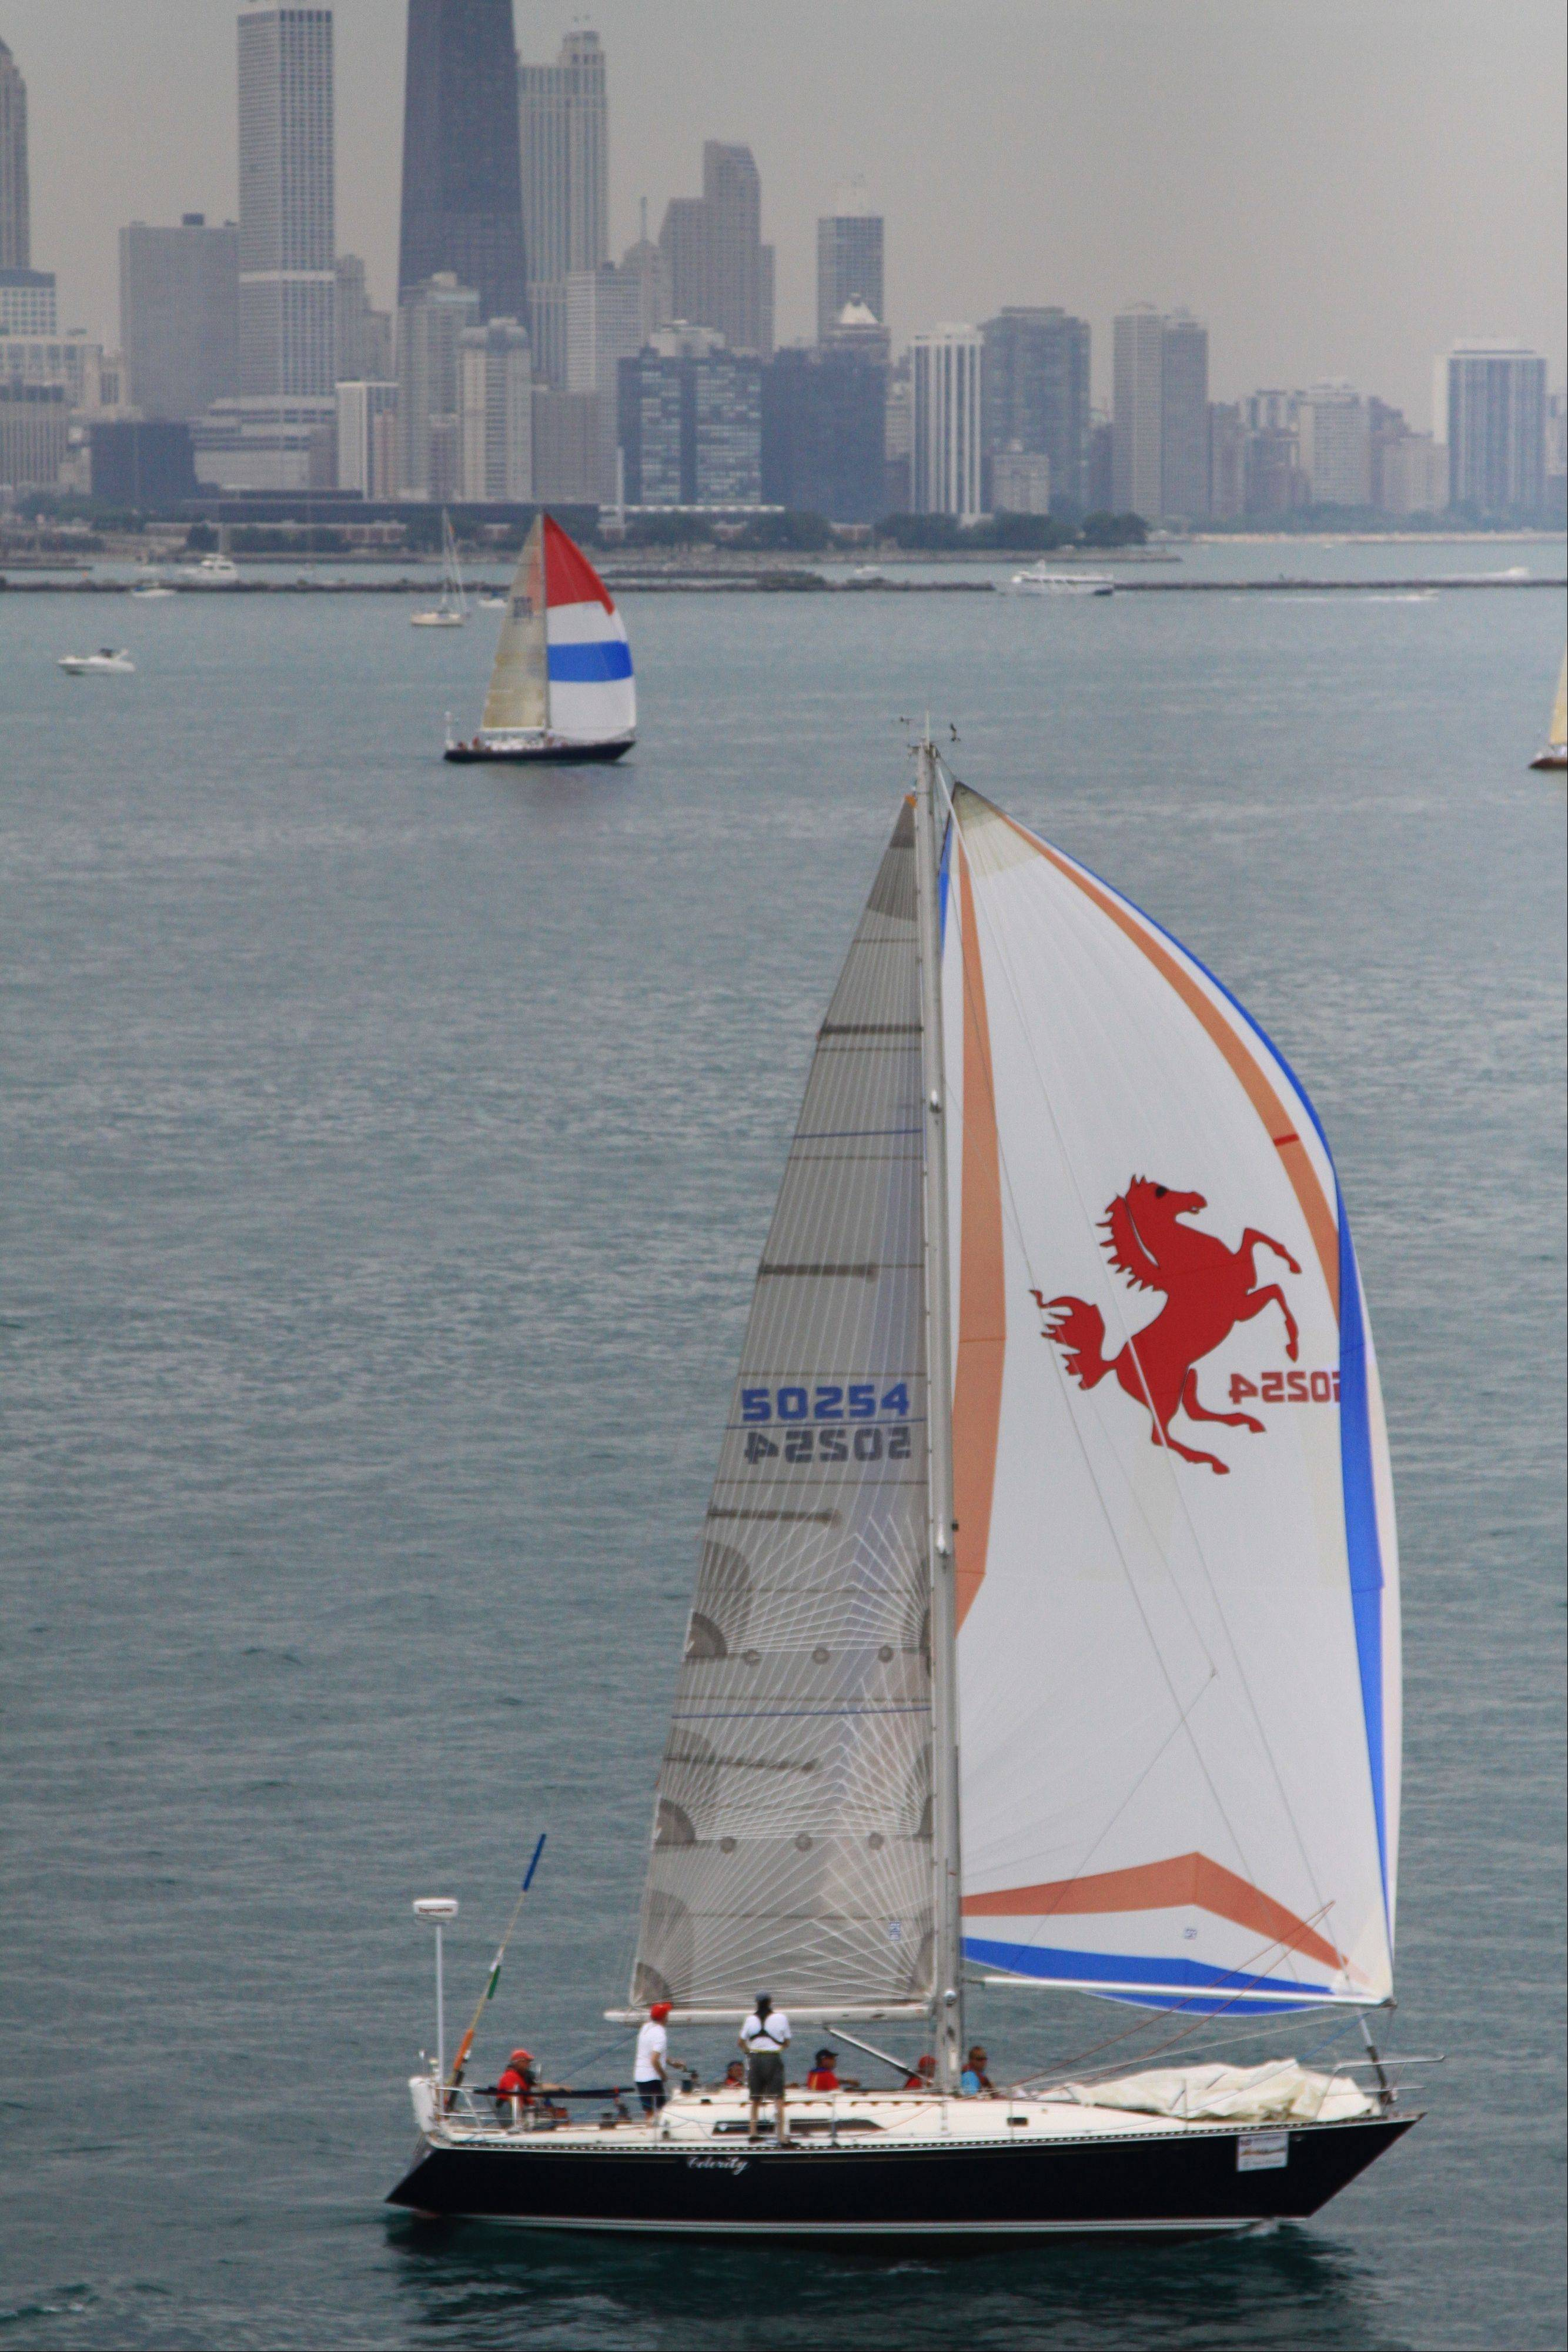 Shel Dummer, of Grayslake, and his crew aboard Celerity as it leaves Chicago during the 2011 race.